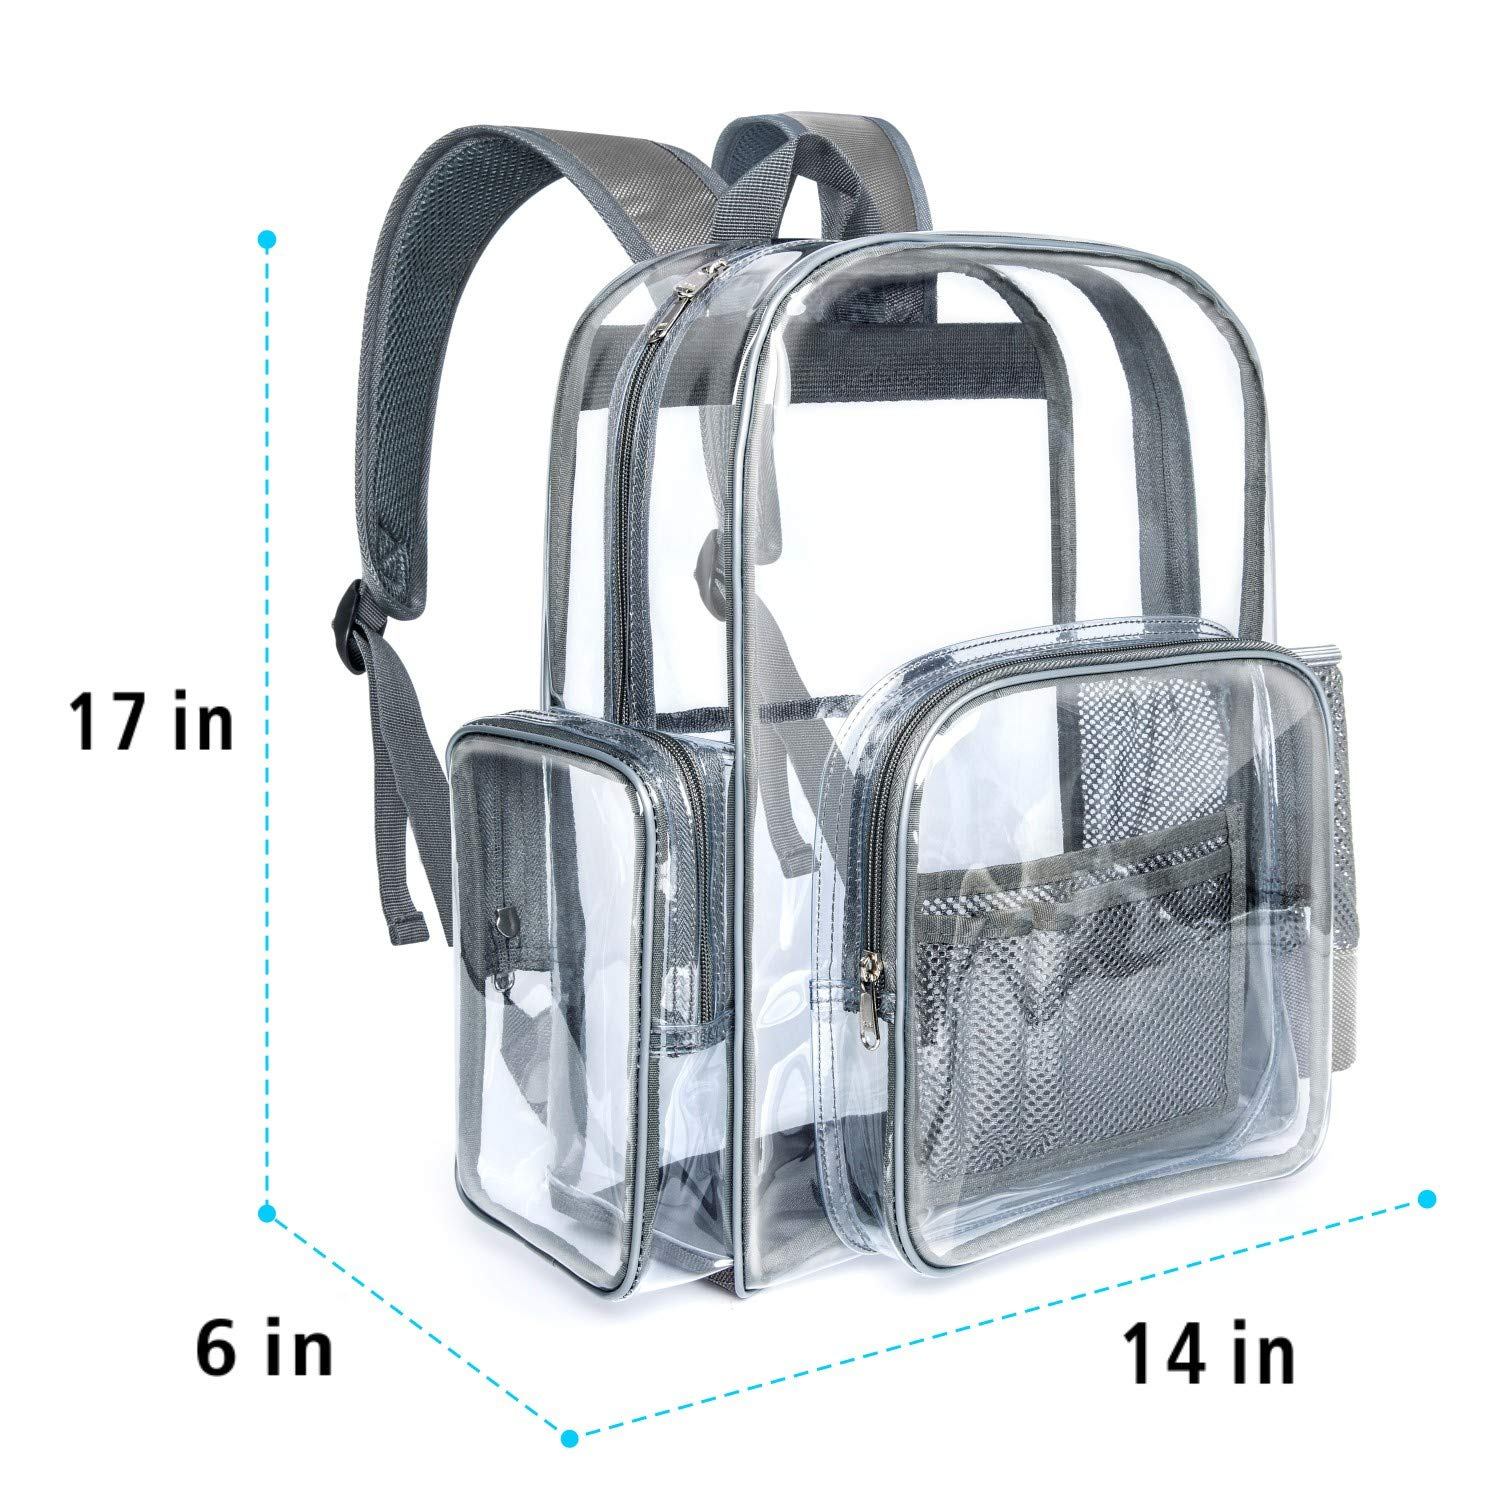 Clear Backpack Packasso Heavy Duty Clear Bag for Adults Stadium Boys Girls